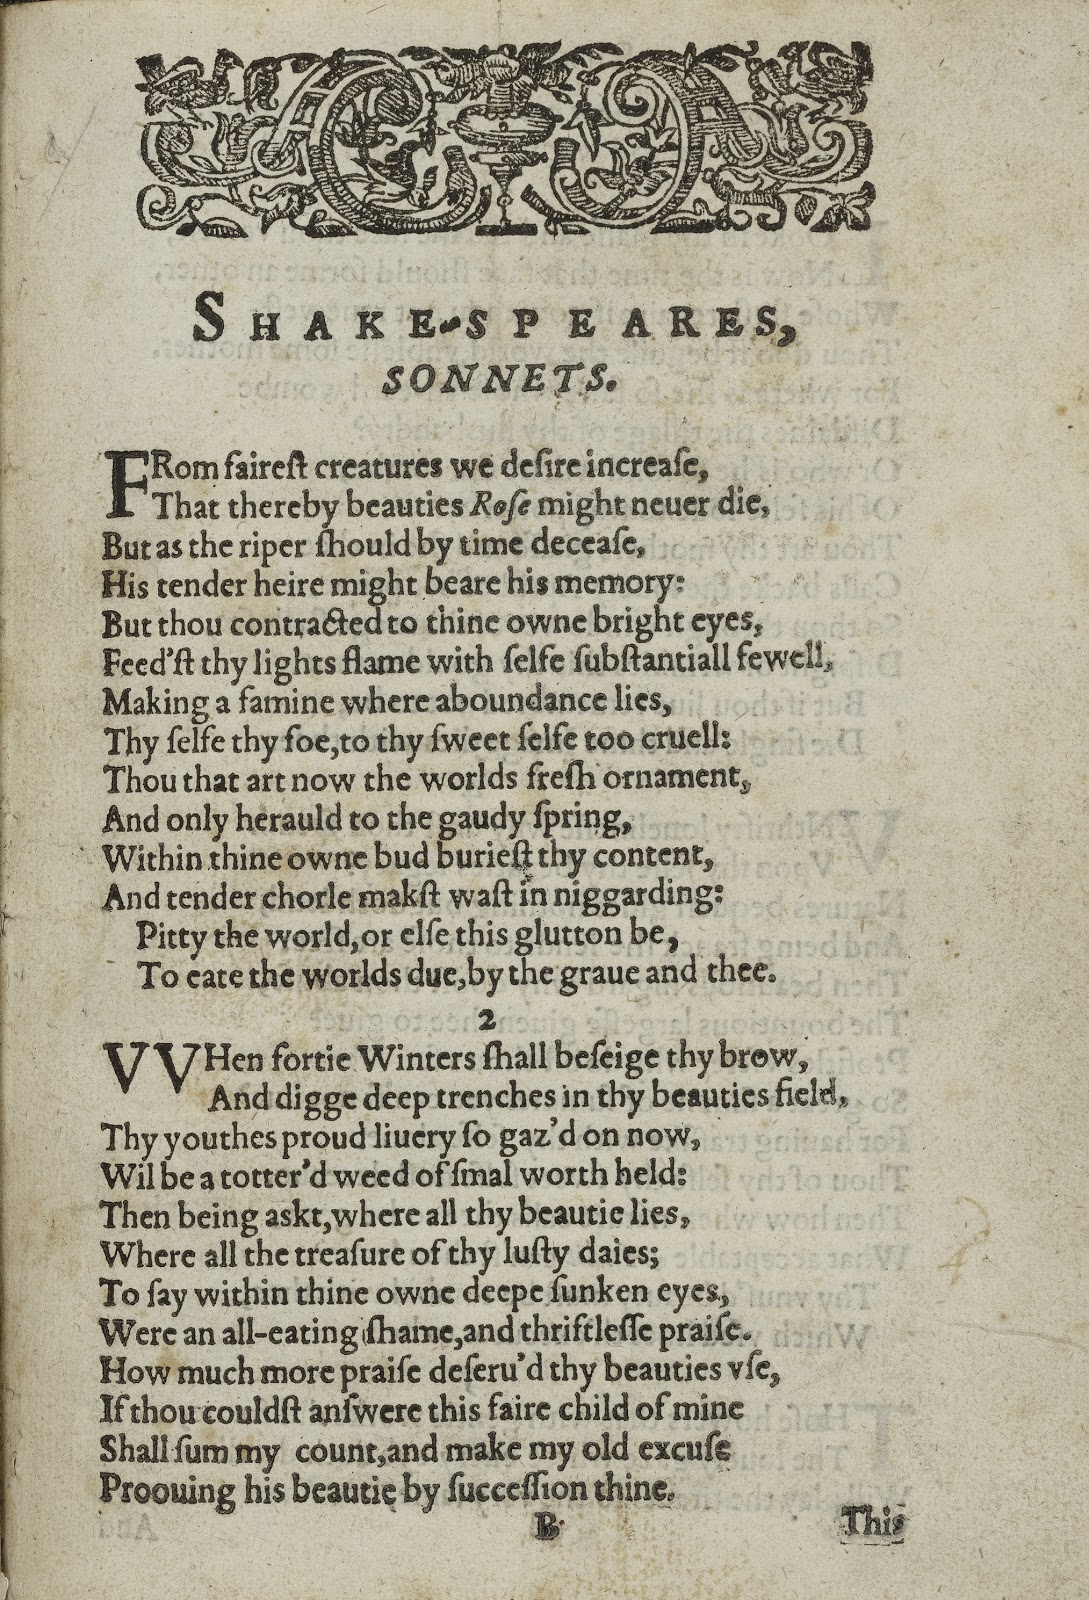 explication of william shakespeares sonnet 2 When forty winters shall besiege thy brow, and dig deep trenches in thy beauty's field, thy youth's proud livery, so gazed on now, will be a tatter'd weed, of small worth held.